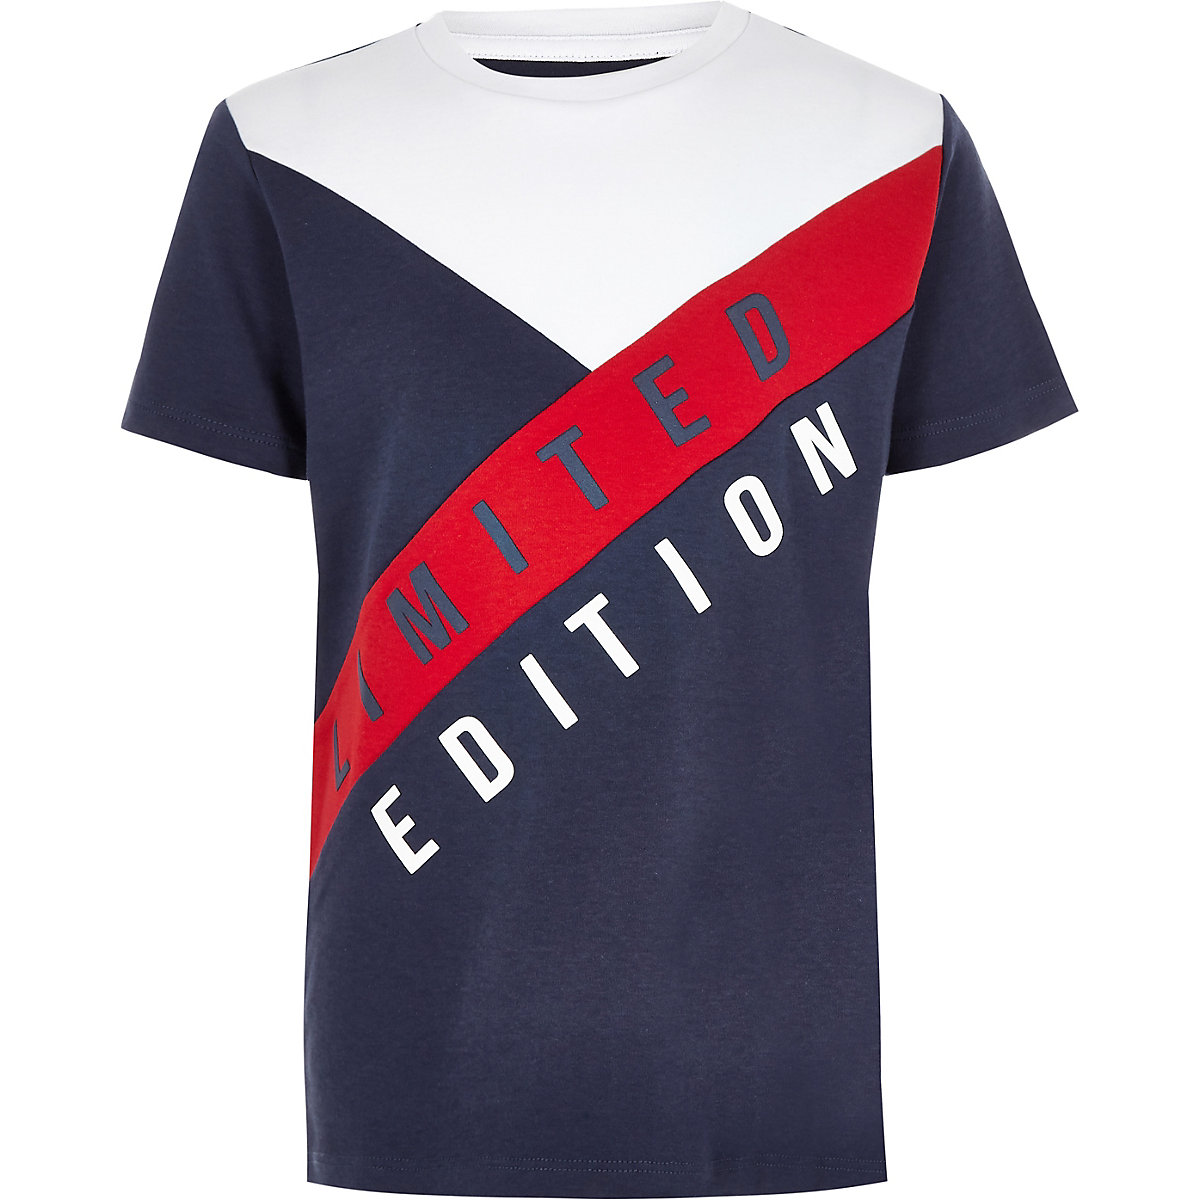 Boys navy 'Limited edition' block T-shirt